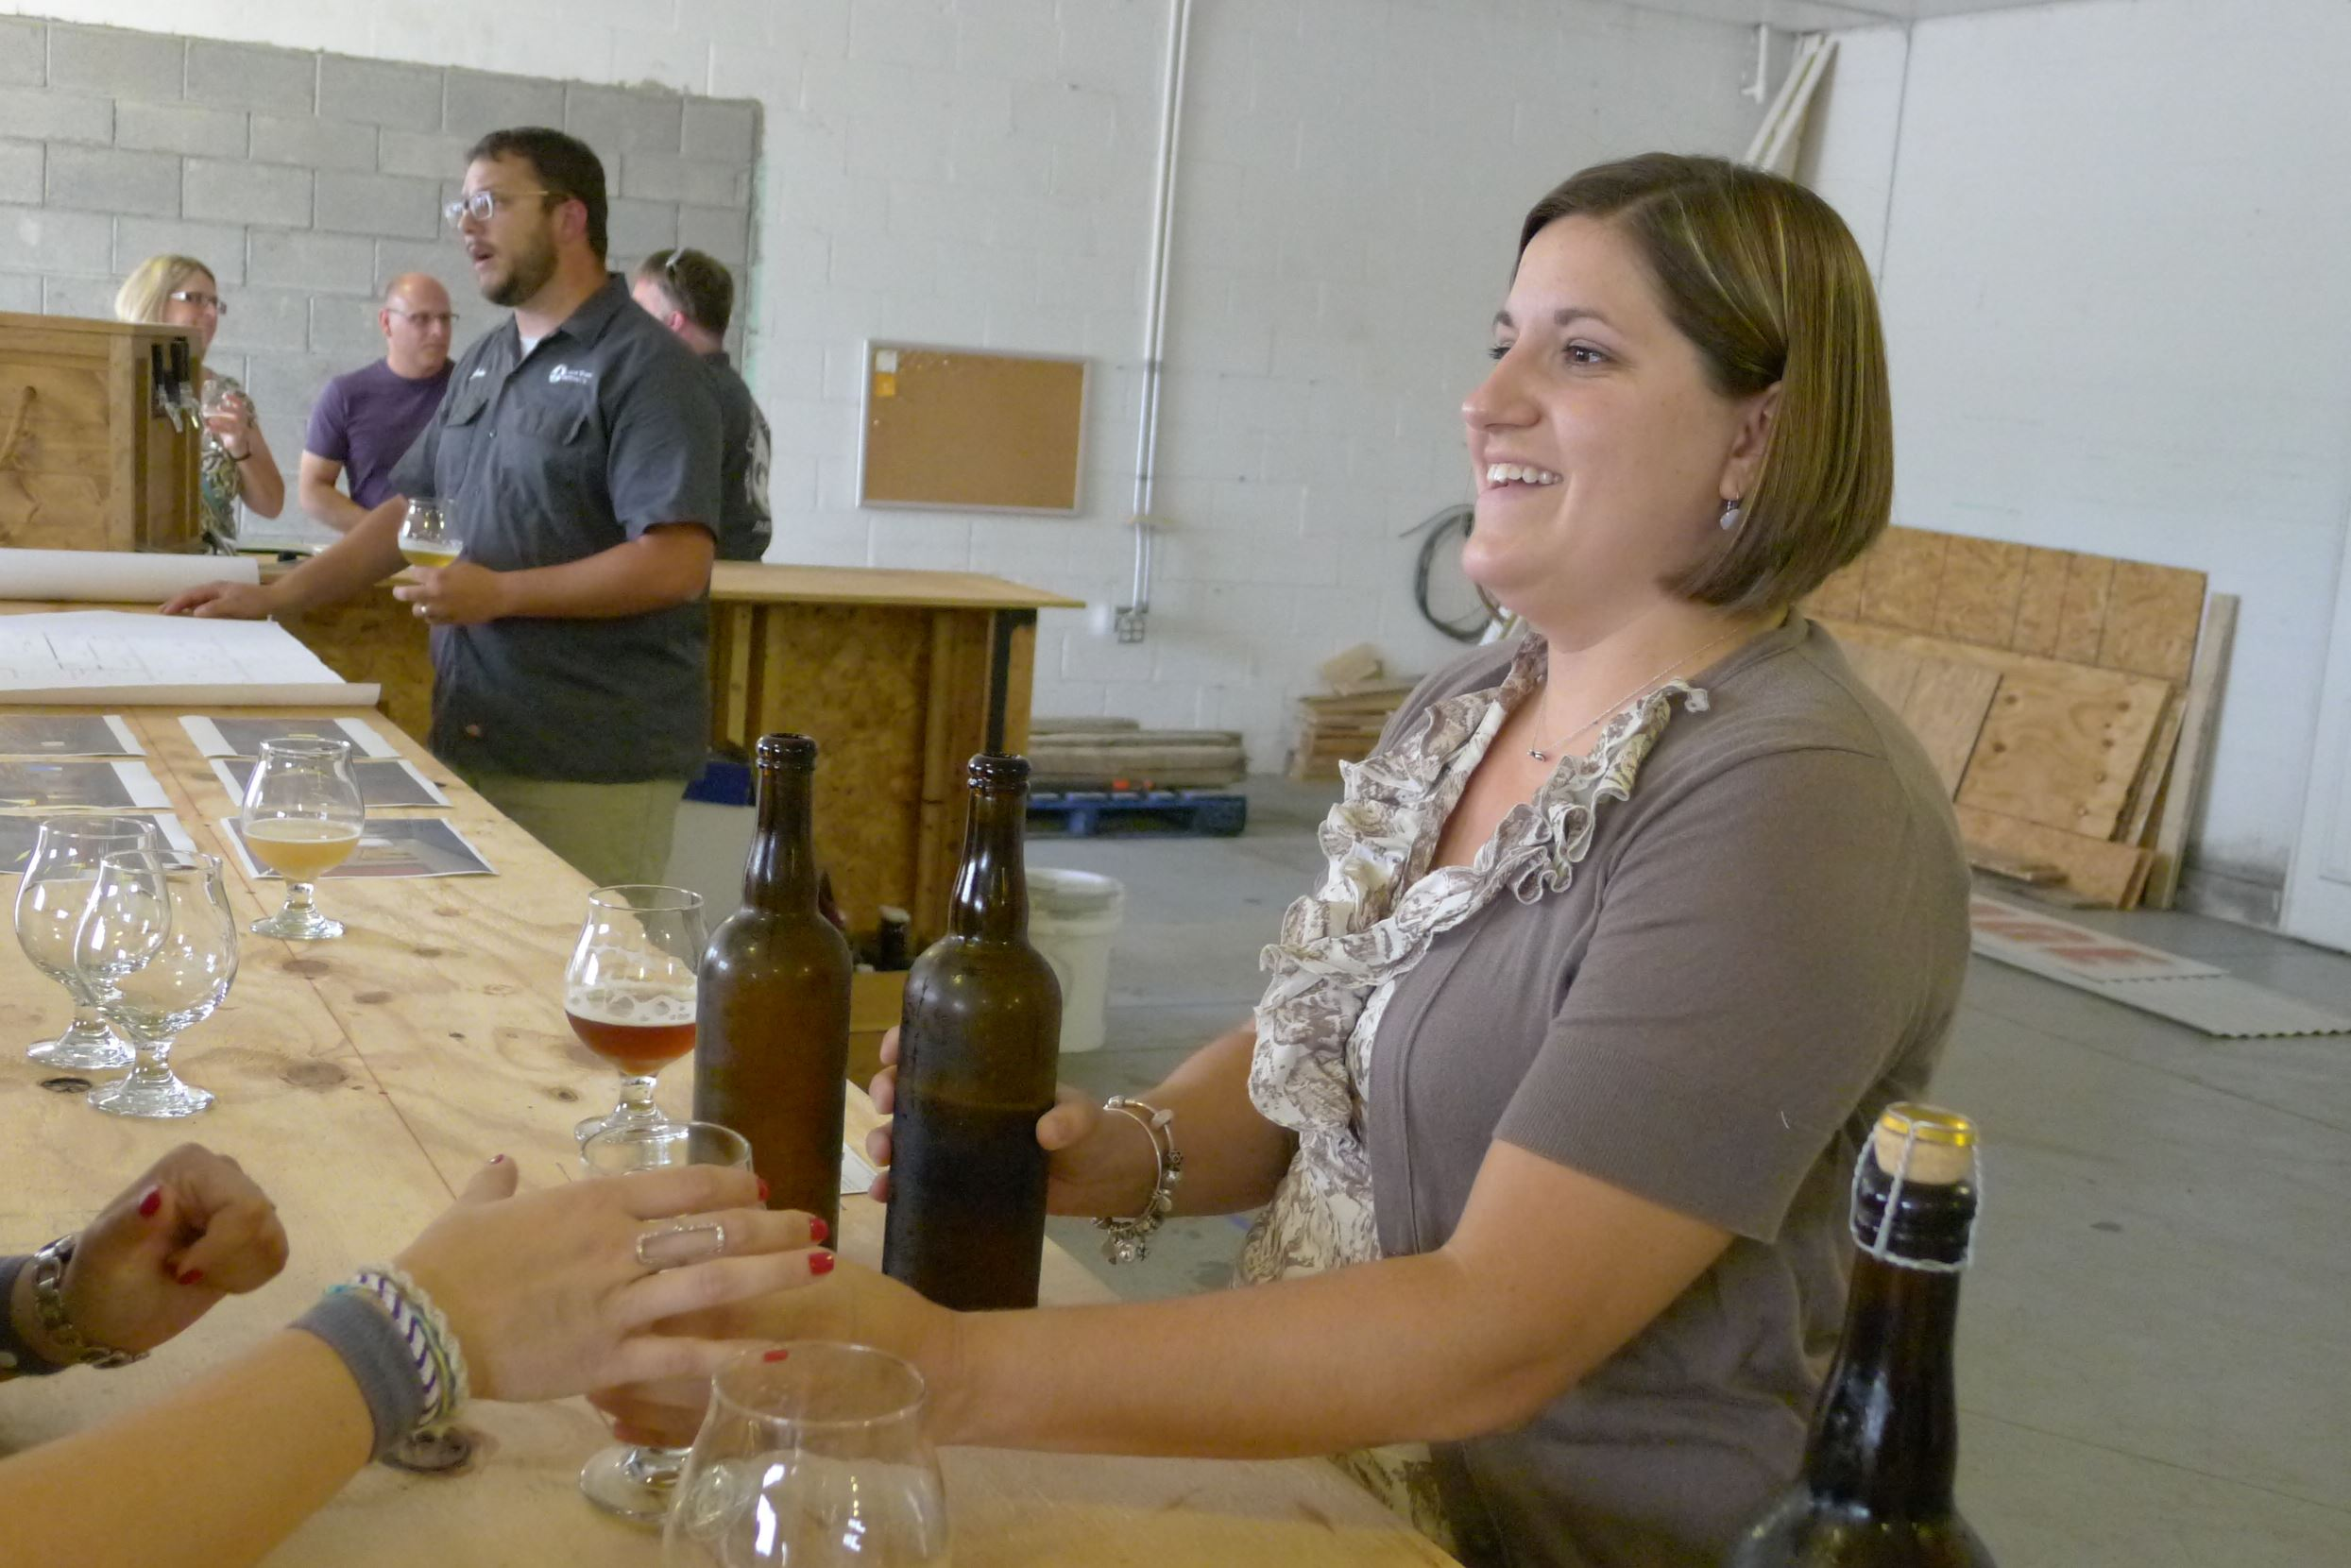 P1260084 Laura Latcher pours visitors tastes of brew at Cellar Works Brewing in Sarver. Helping her work the bar, behind her, is her husband, John Latcher.